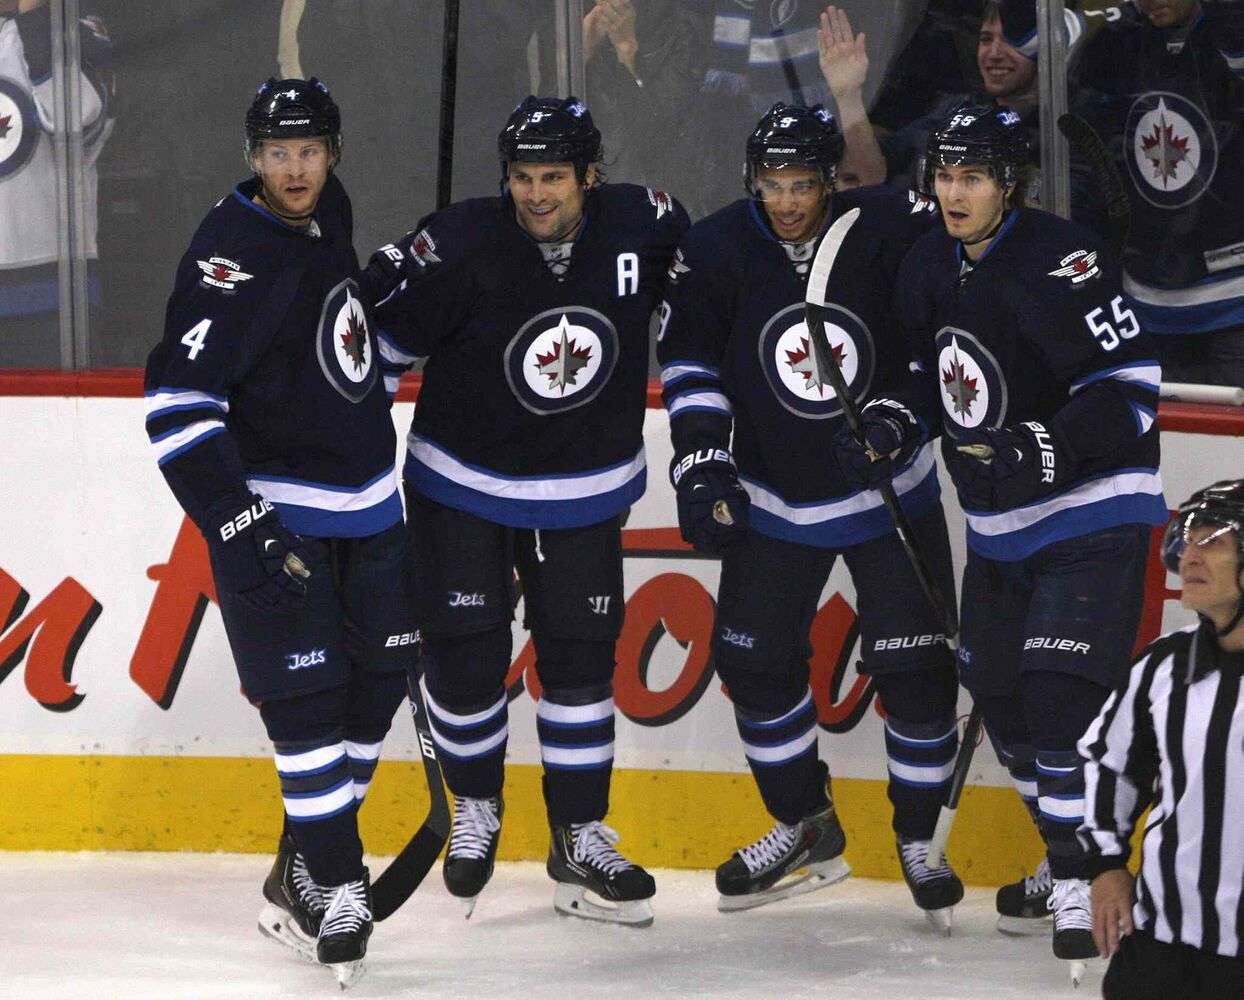 Winnipeg Jets (from left) Paul Postma, Mark Stuart, Evander Kane, and Mark Scheifele celebrate Kane's first-period goal.